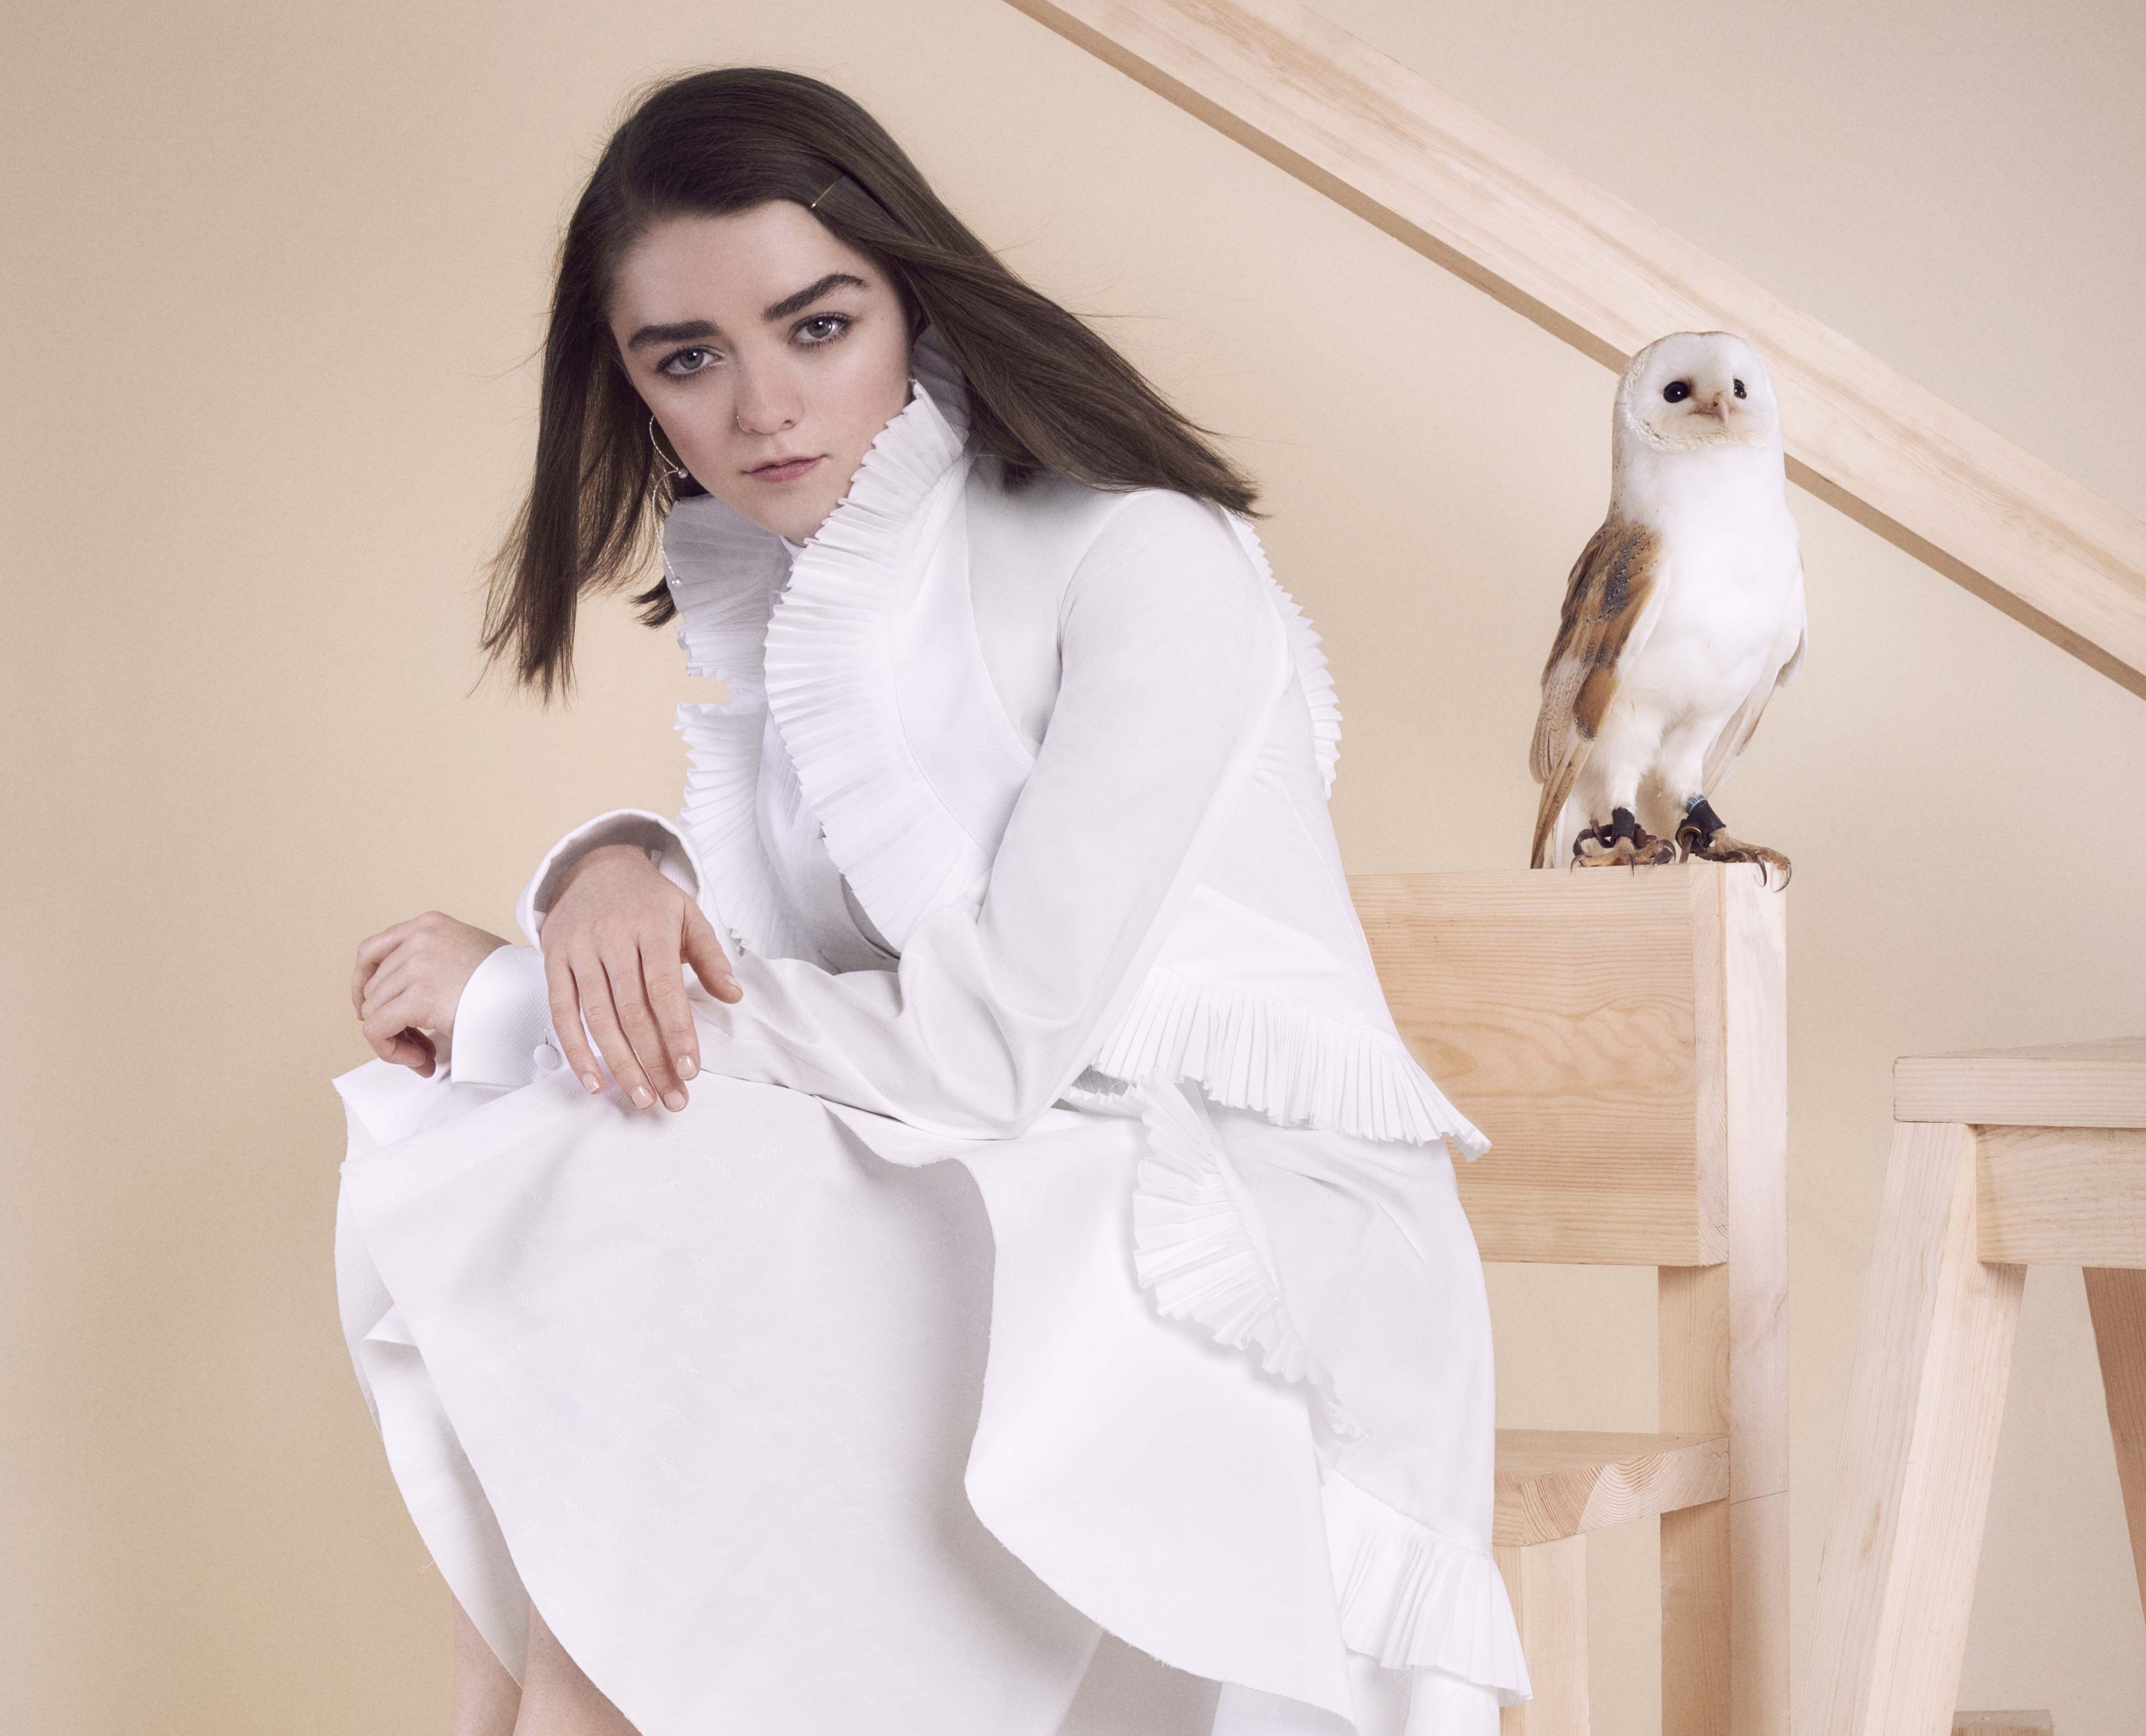 Maisie Williams With Owl Photoshoot, HD 4K Wallpaper